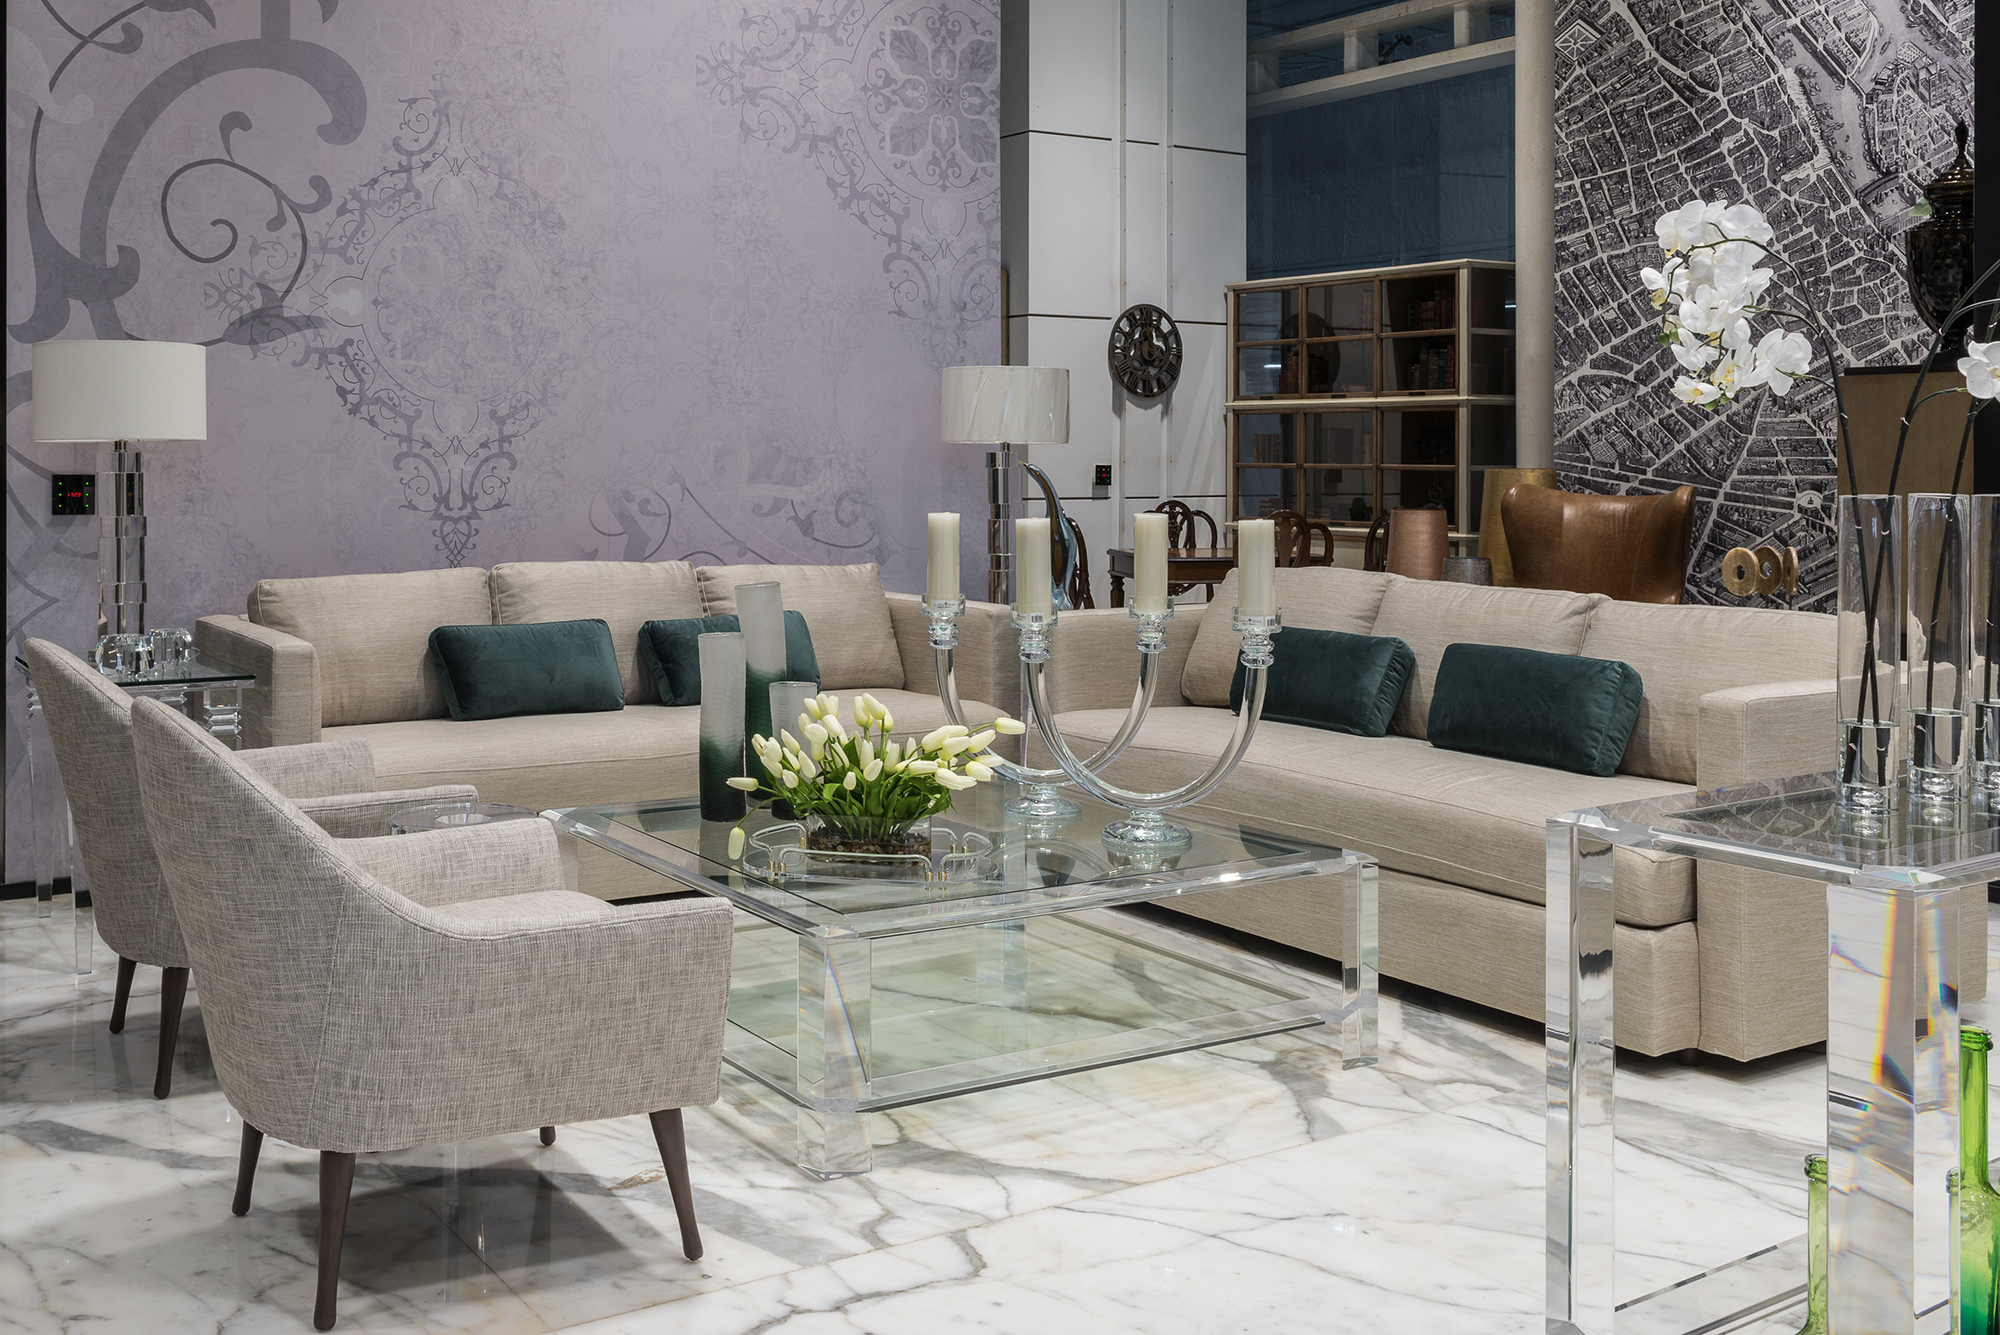 sofa cleaning services mumbai sean brown table maison by international furniture brands launches flagship